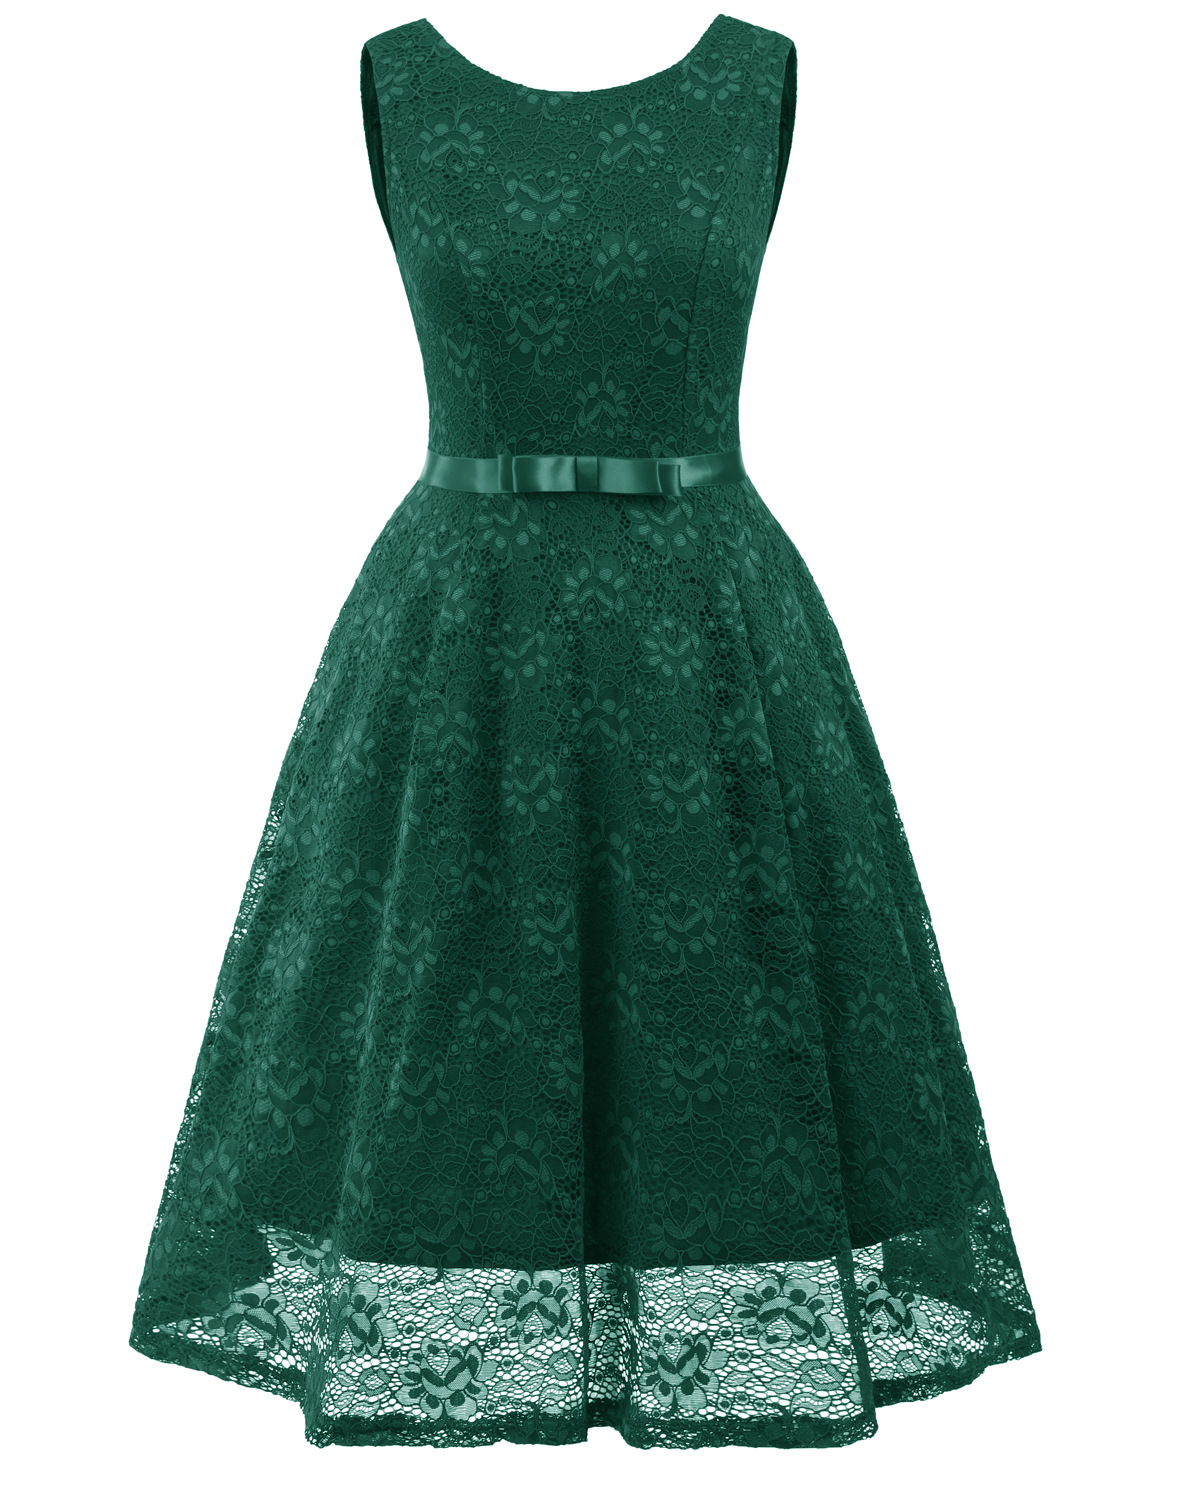 Vintage Floral Lace Dress O Neck Sleeveless Bow Belted Wedding Party Swing Dress green